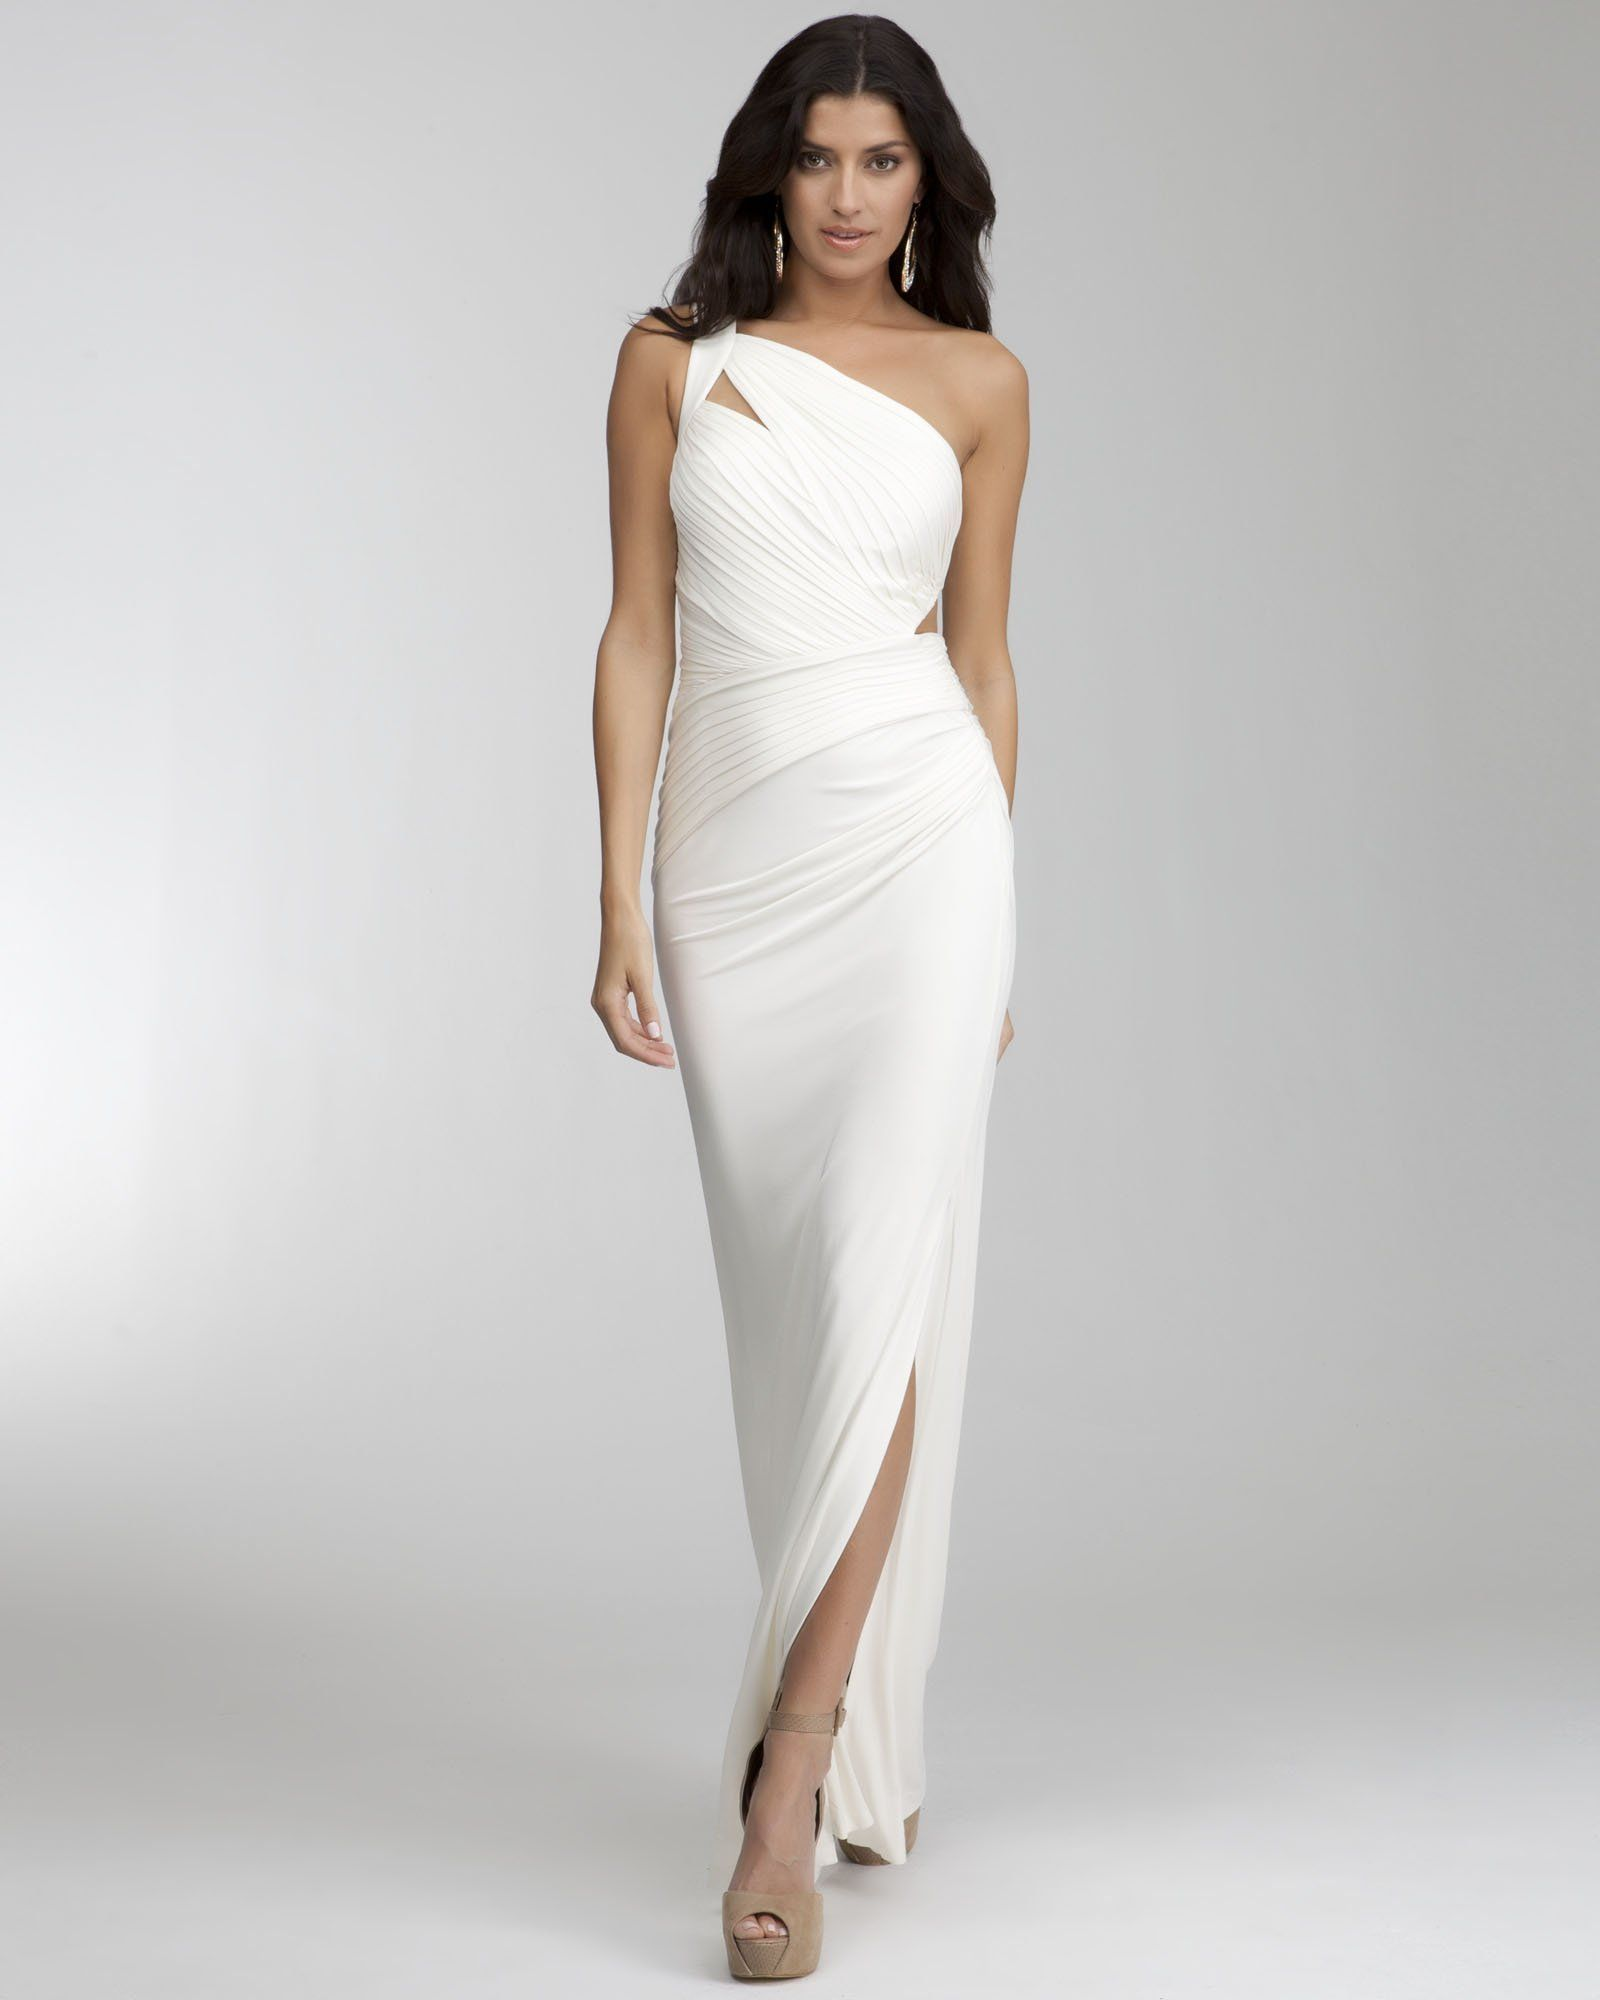 Bebe long one shoulder cutout dress could be a wedding dress